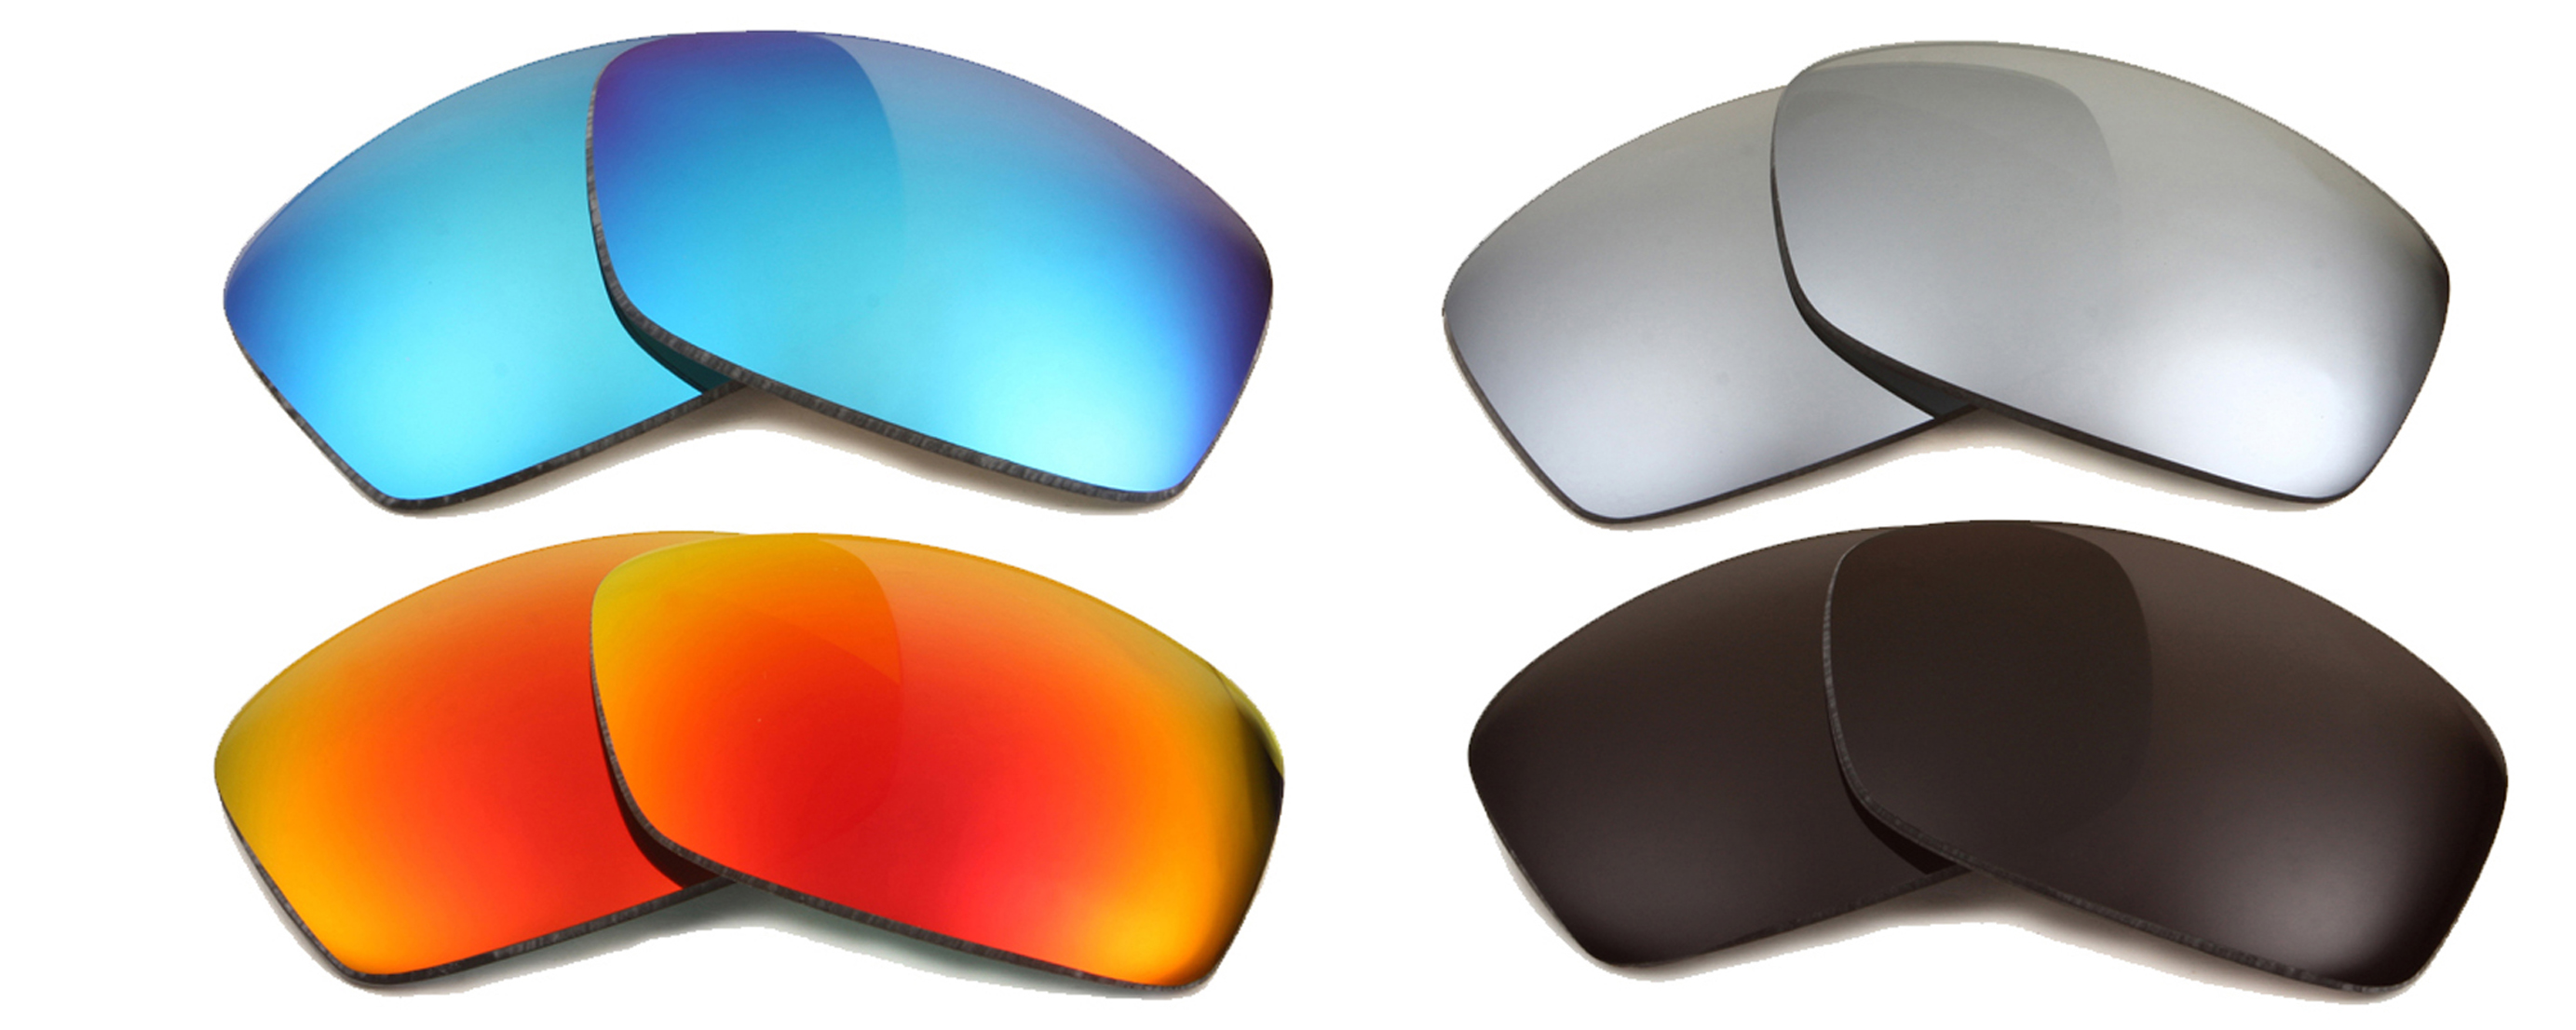 b410a21ace HIJINX Replacement Lenses Polarized Grey Blue Red   Silver by SEEK fits  OAKLEY